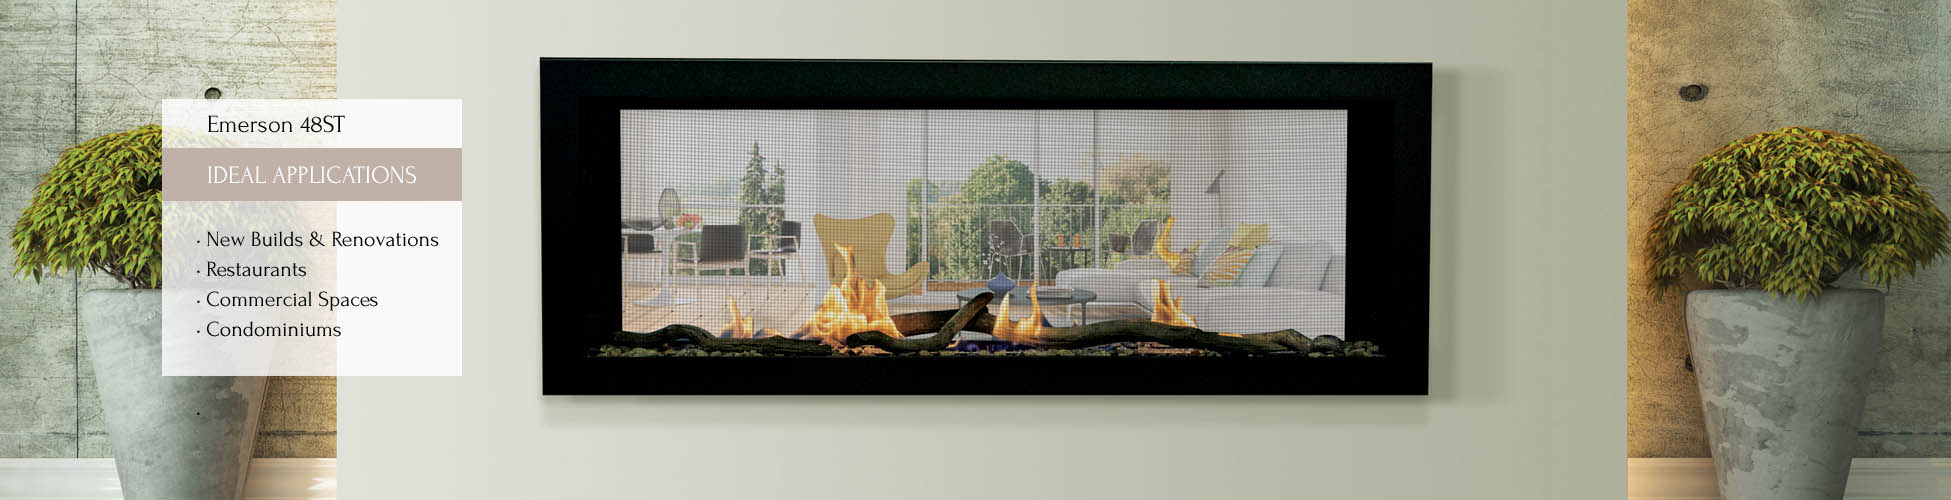 Sierra Flame Emerson 48ST gas fireplace